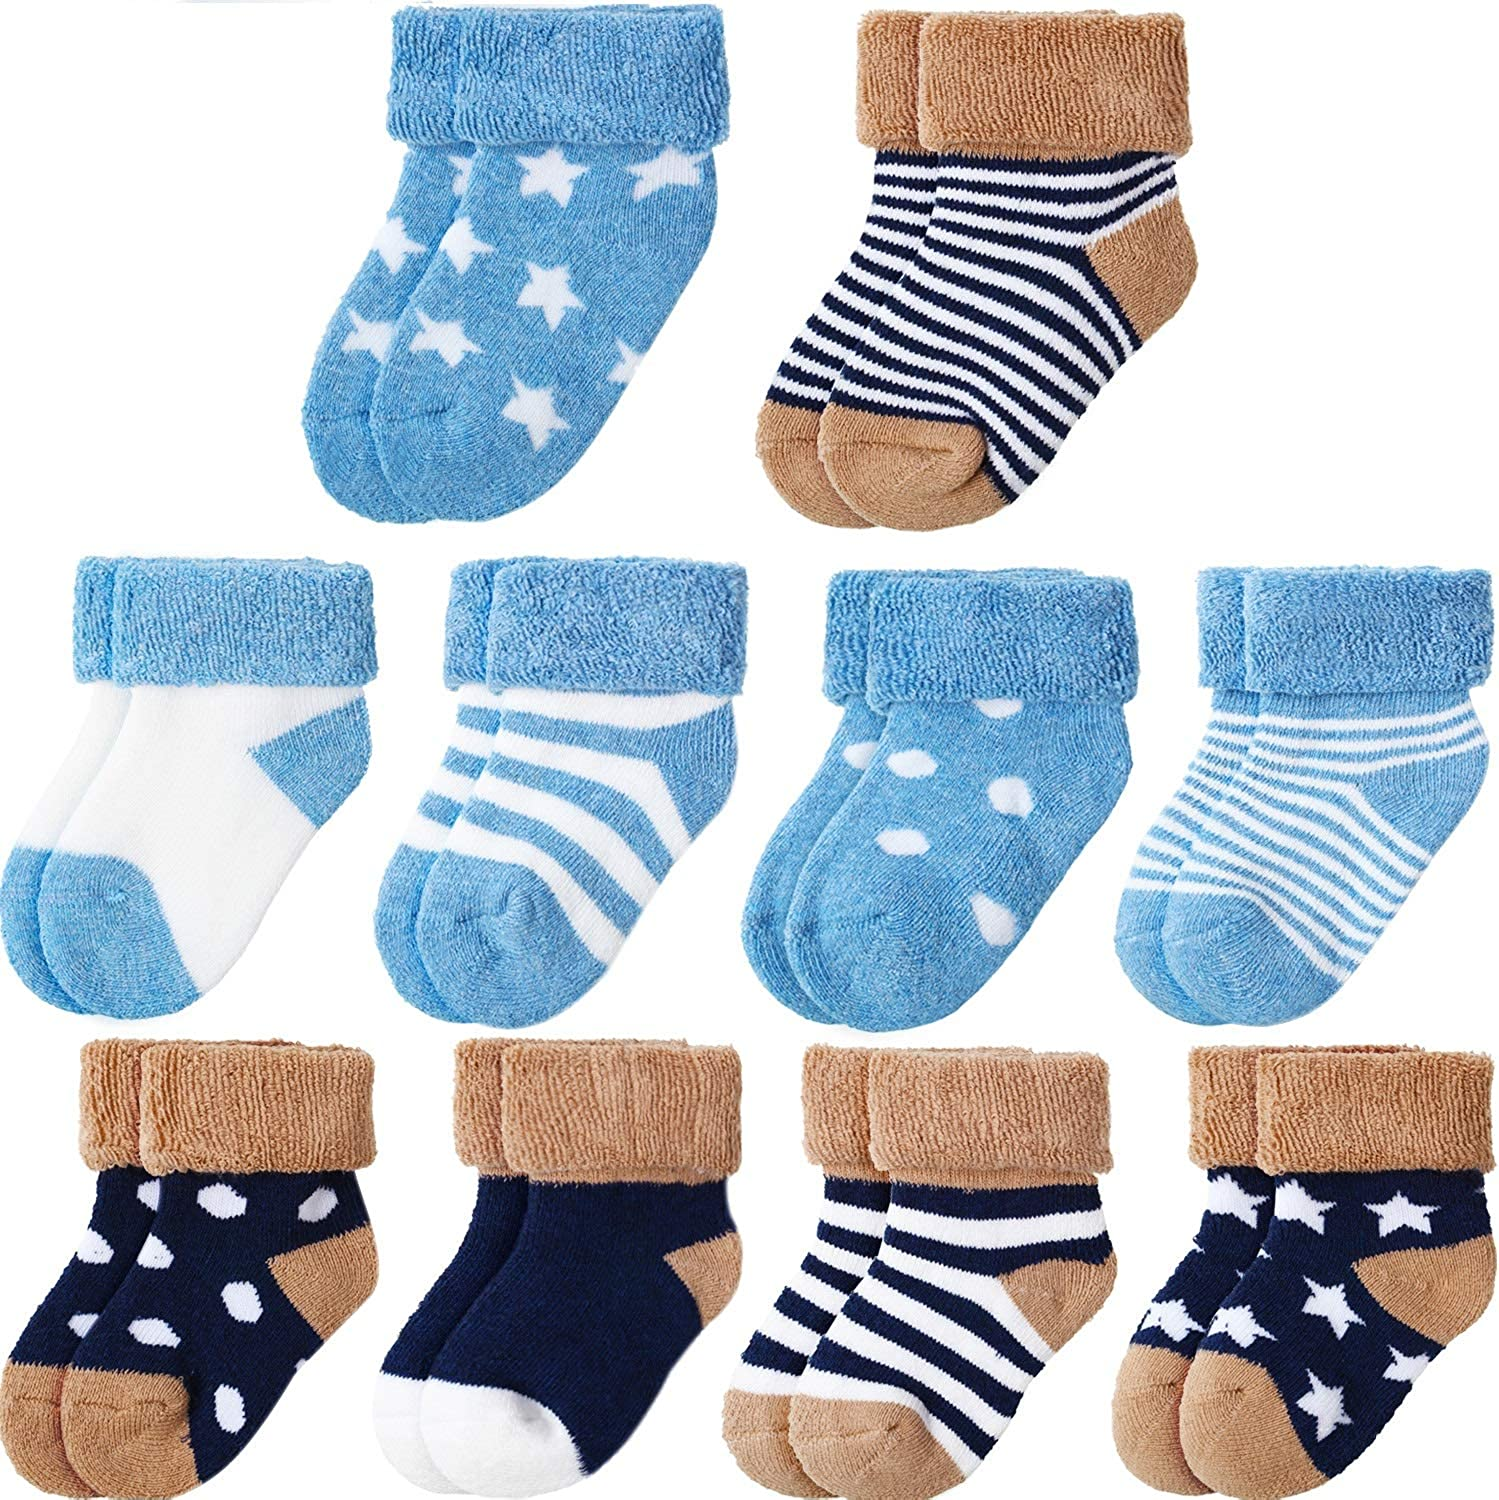 10 Pairs Baby Turn Cuff Socks Toddlers Infant Ankle Socks Warm and Socks (Navy, Light Blue)